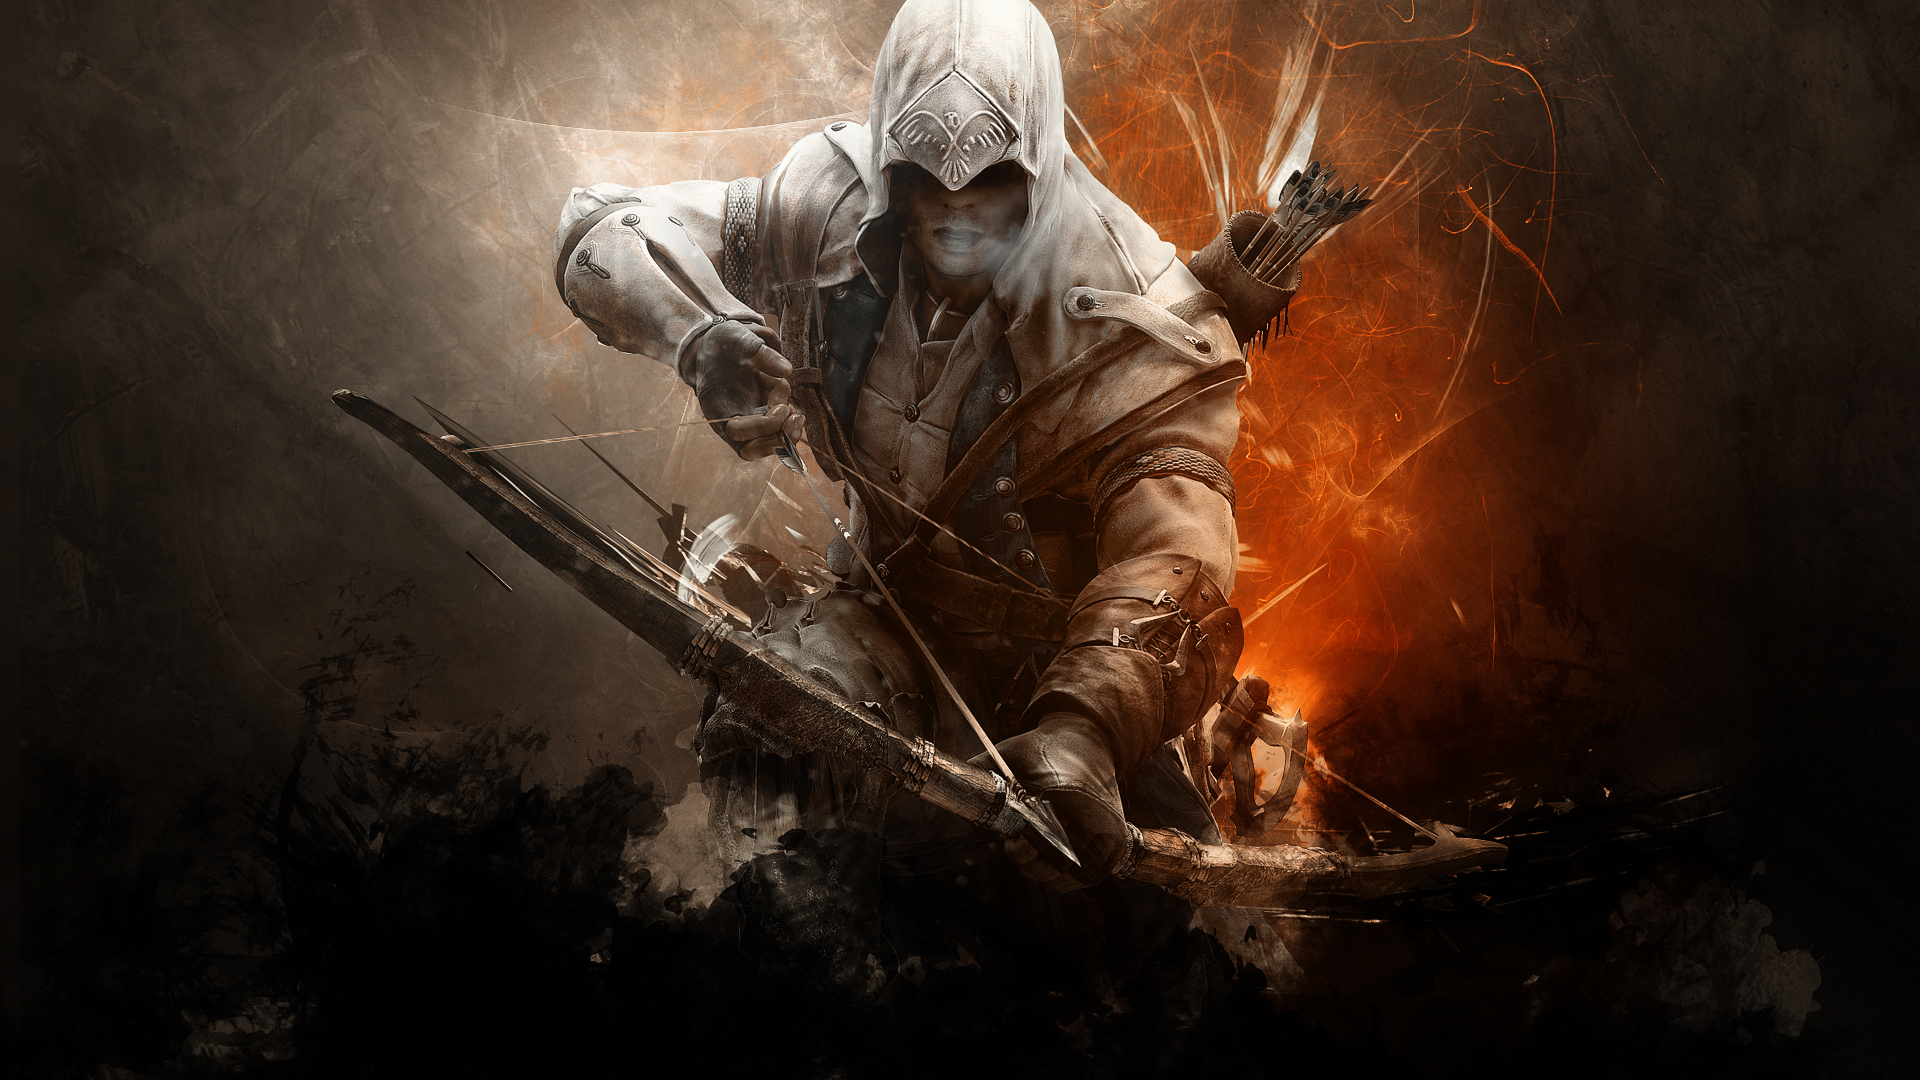 Free Download Assassins Creed 3 Connor Wallpaper 1920x1080 For Your Desktop Mobile Tablet Explore 48 Assassin S Creed Backgrounds And Wallpapers Assassin S Creed Revelations Wallpaper Assassin S Creed Live Wallpaper